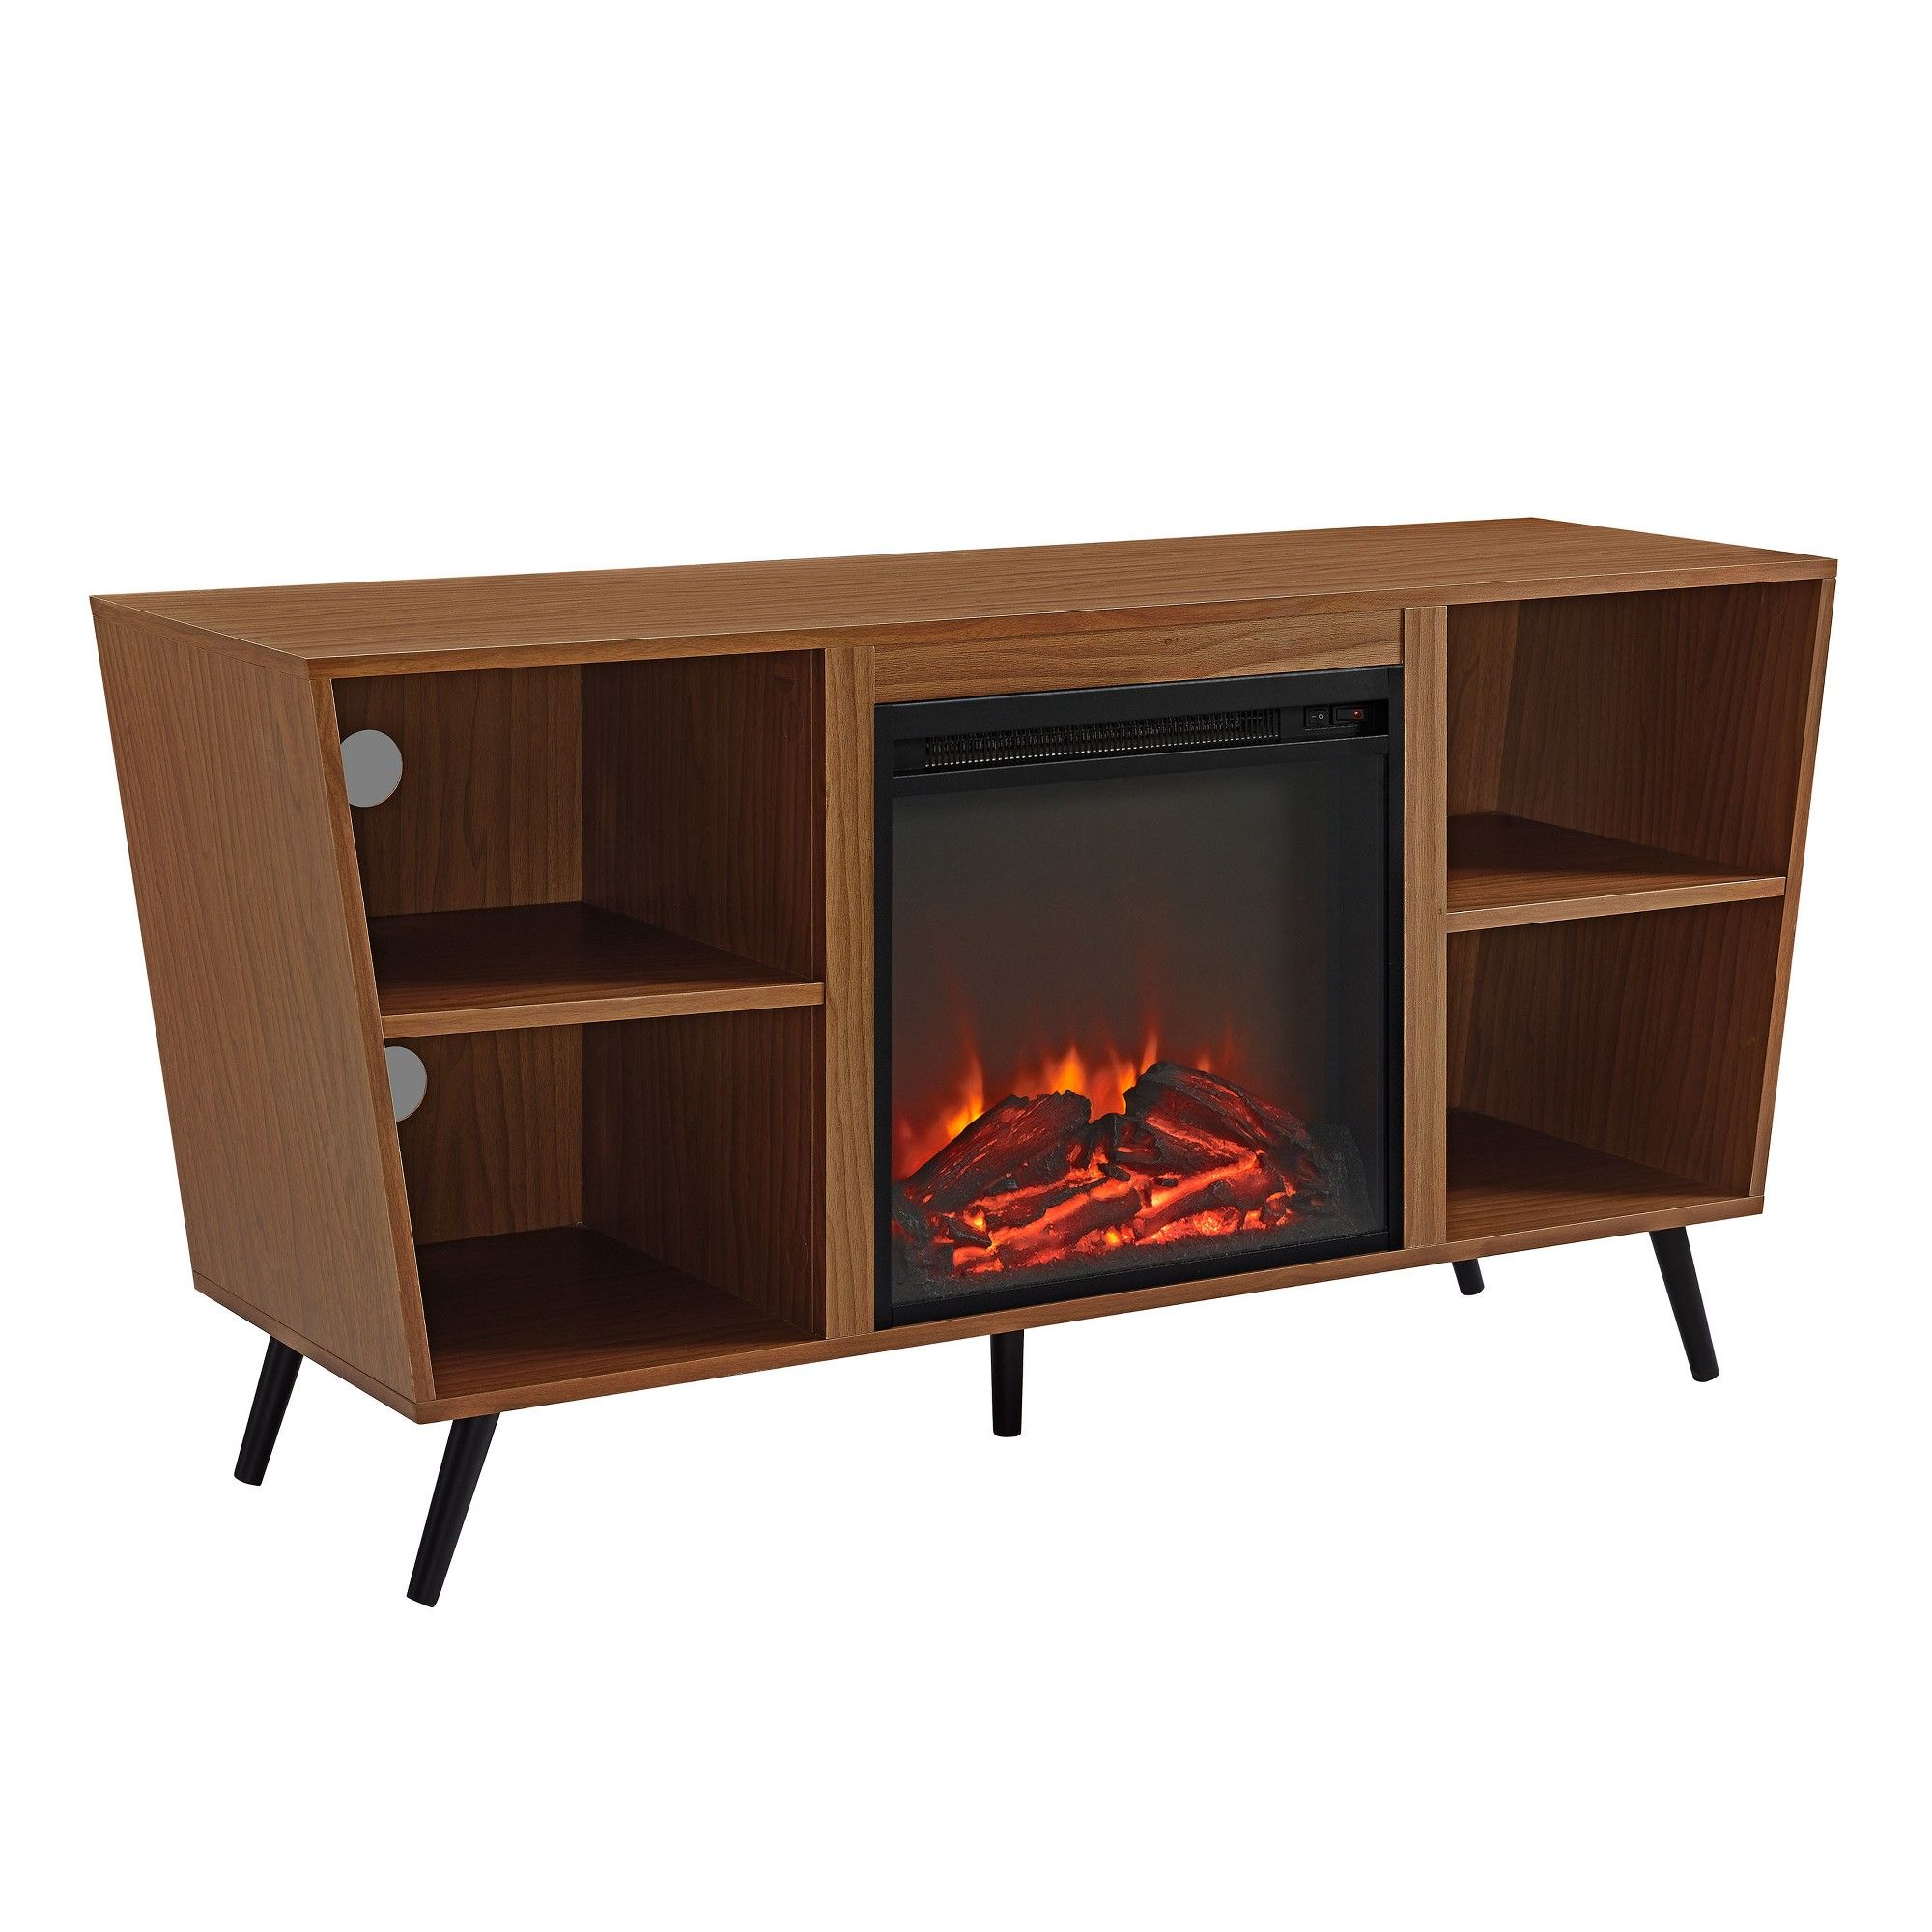 52 angled side fireplace console with metal legs acorn saracina